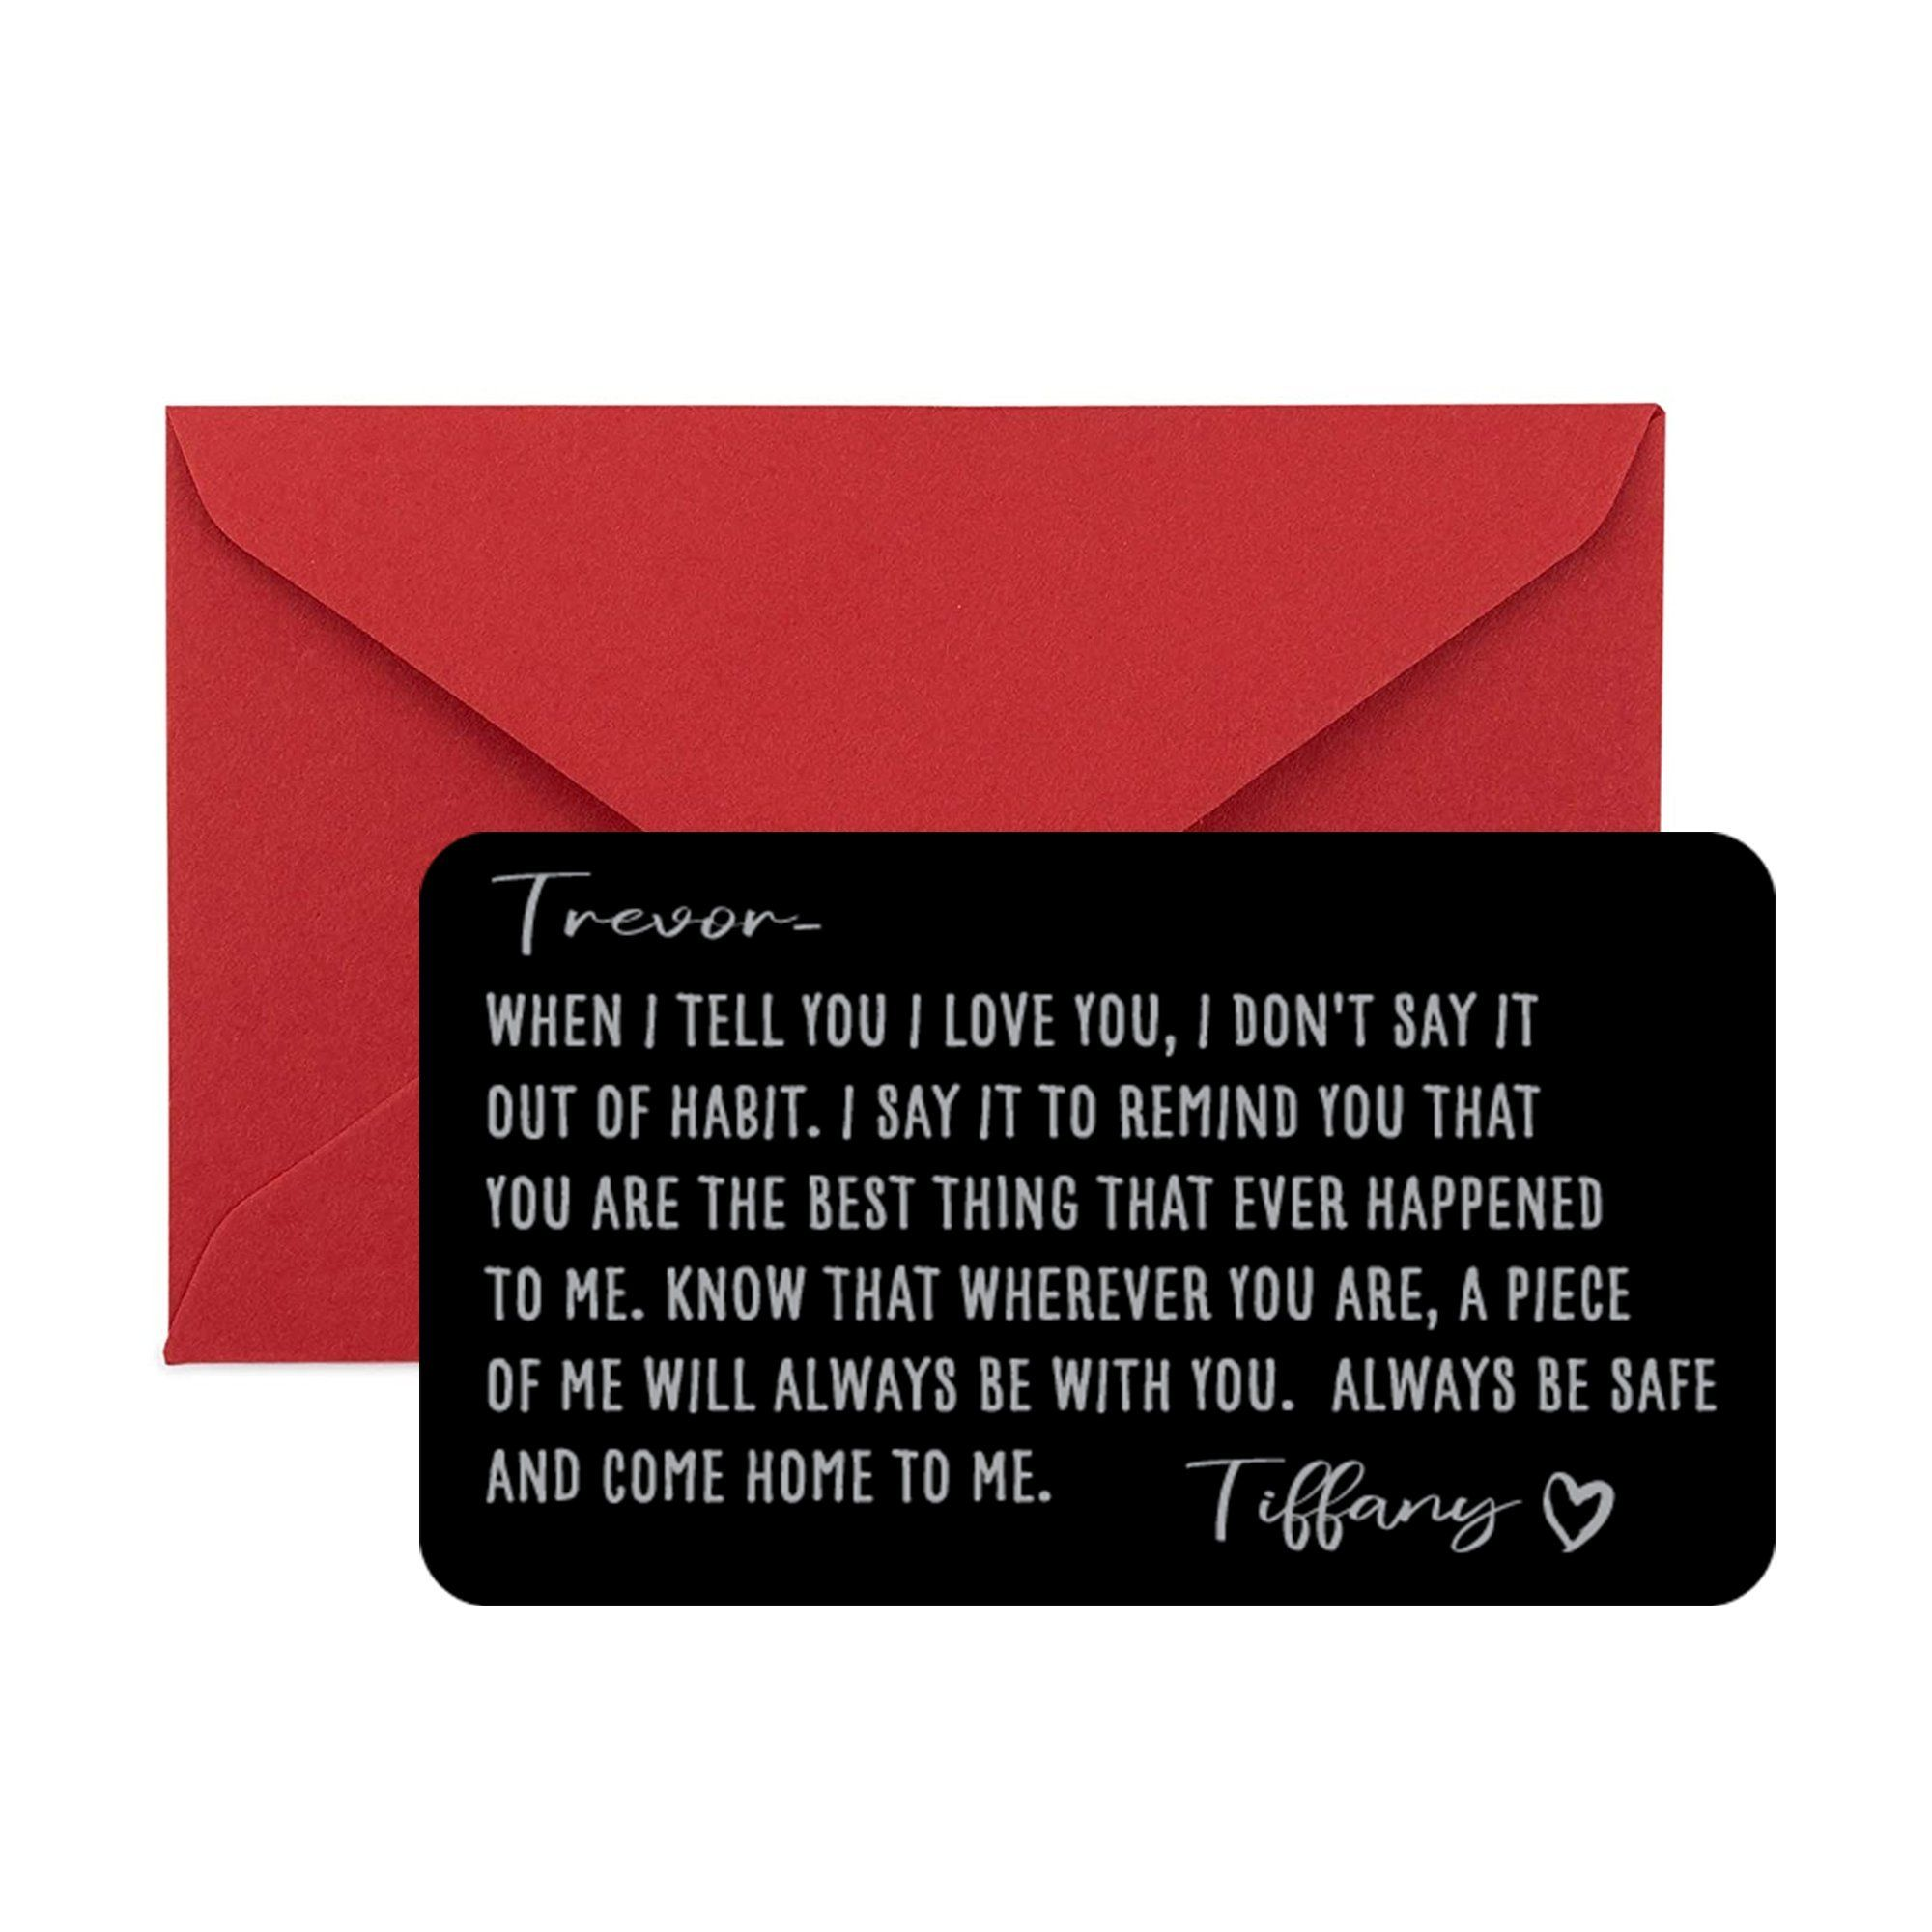 "Engraved Wallet Insert For Men, Boyfriend - Mini Love Message Perfect for Valentine's, Anniversary, Wedding, For the Man I Love MEASUREMENT: Each measure approximately credit card sized (Just 3.5"" x 2."" x 0.02""). Fits Perfectly in Any Wallet!AWESOME QUALITY: This cute wallet insert is made of highest quality anodized aluminum which is sturdy and lightweight. Will not bend!100% MADE IN USA: Metal Made and Laser Engraving done in the USAGIFT READY: Packaged in a sexy red envelope ready for your bo"